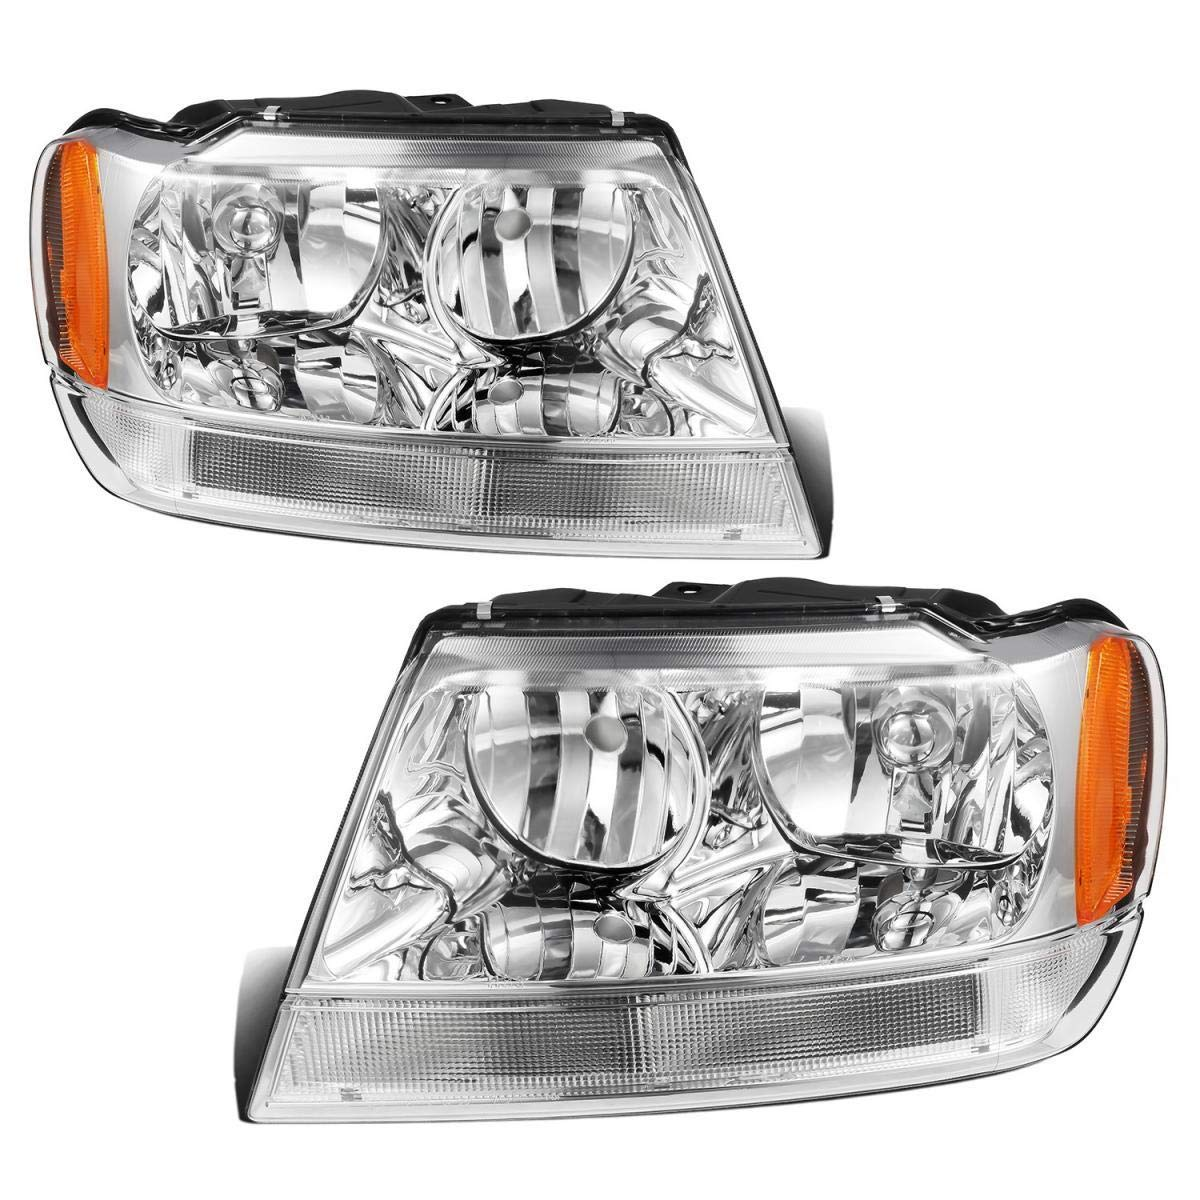 Partsam Headlight Assembly Compatible with Jeep Grand Cherokee 1999 2000 2001 2002 2003 2004 Side Left Right Replacement Headlamp Chrome Housing Amber Corner Reflector (Driver and Passenger Side)